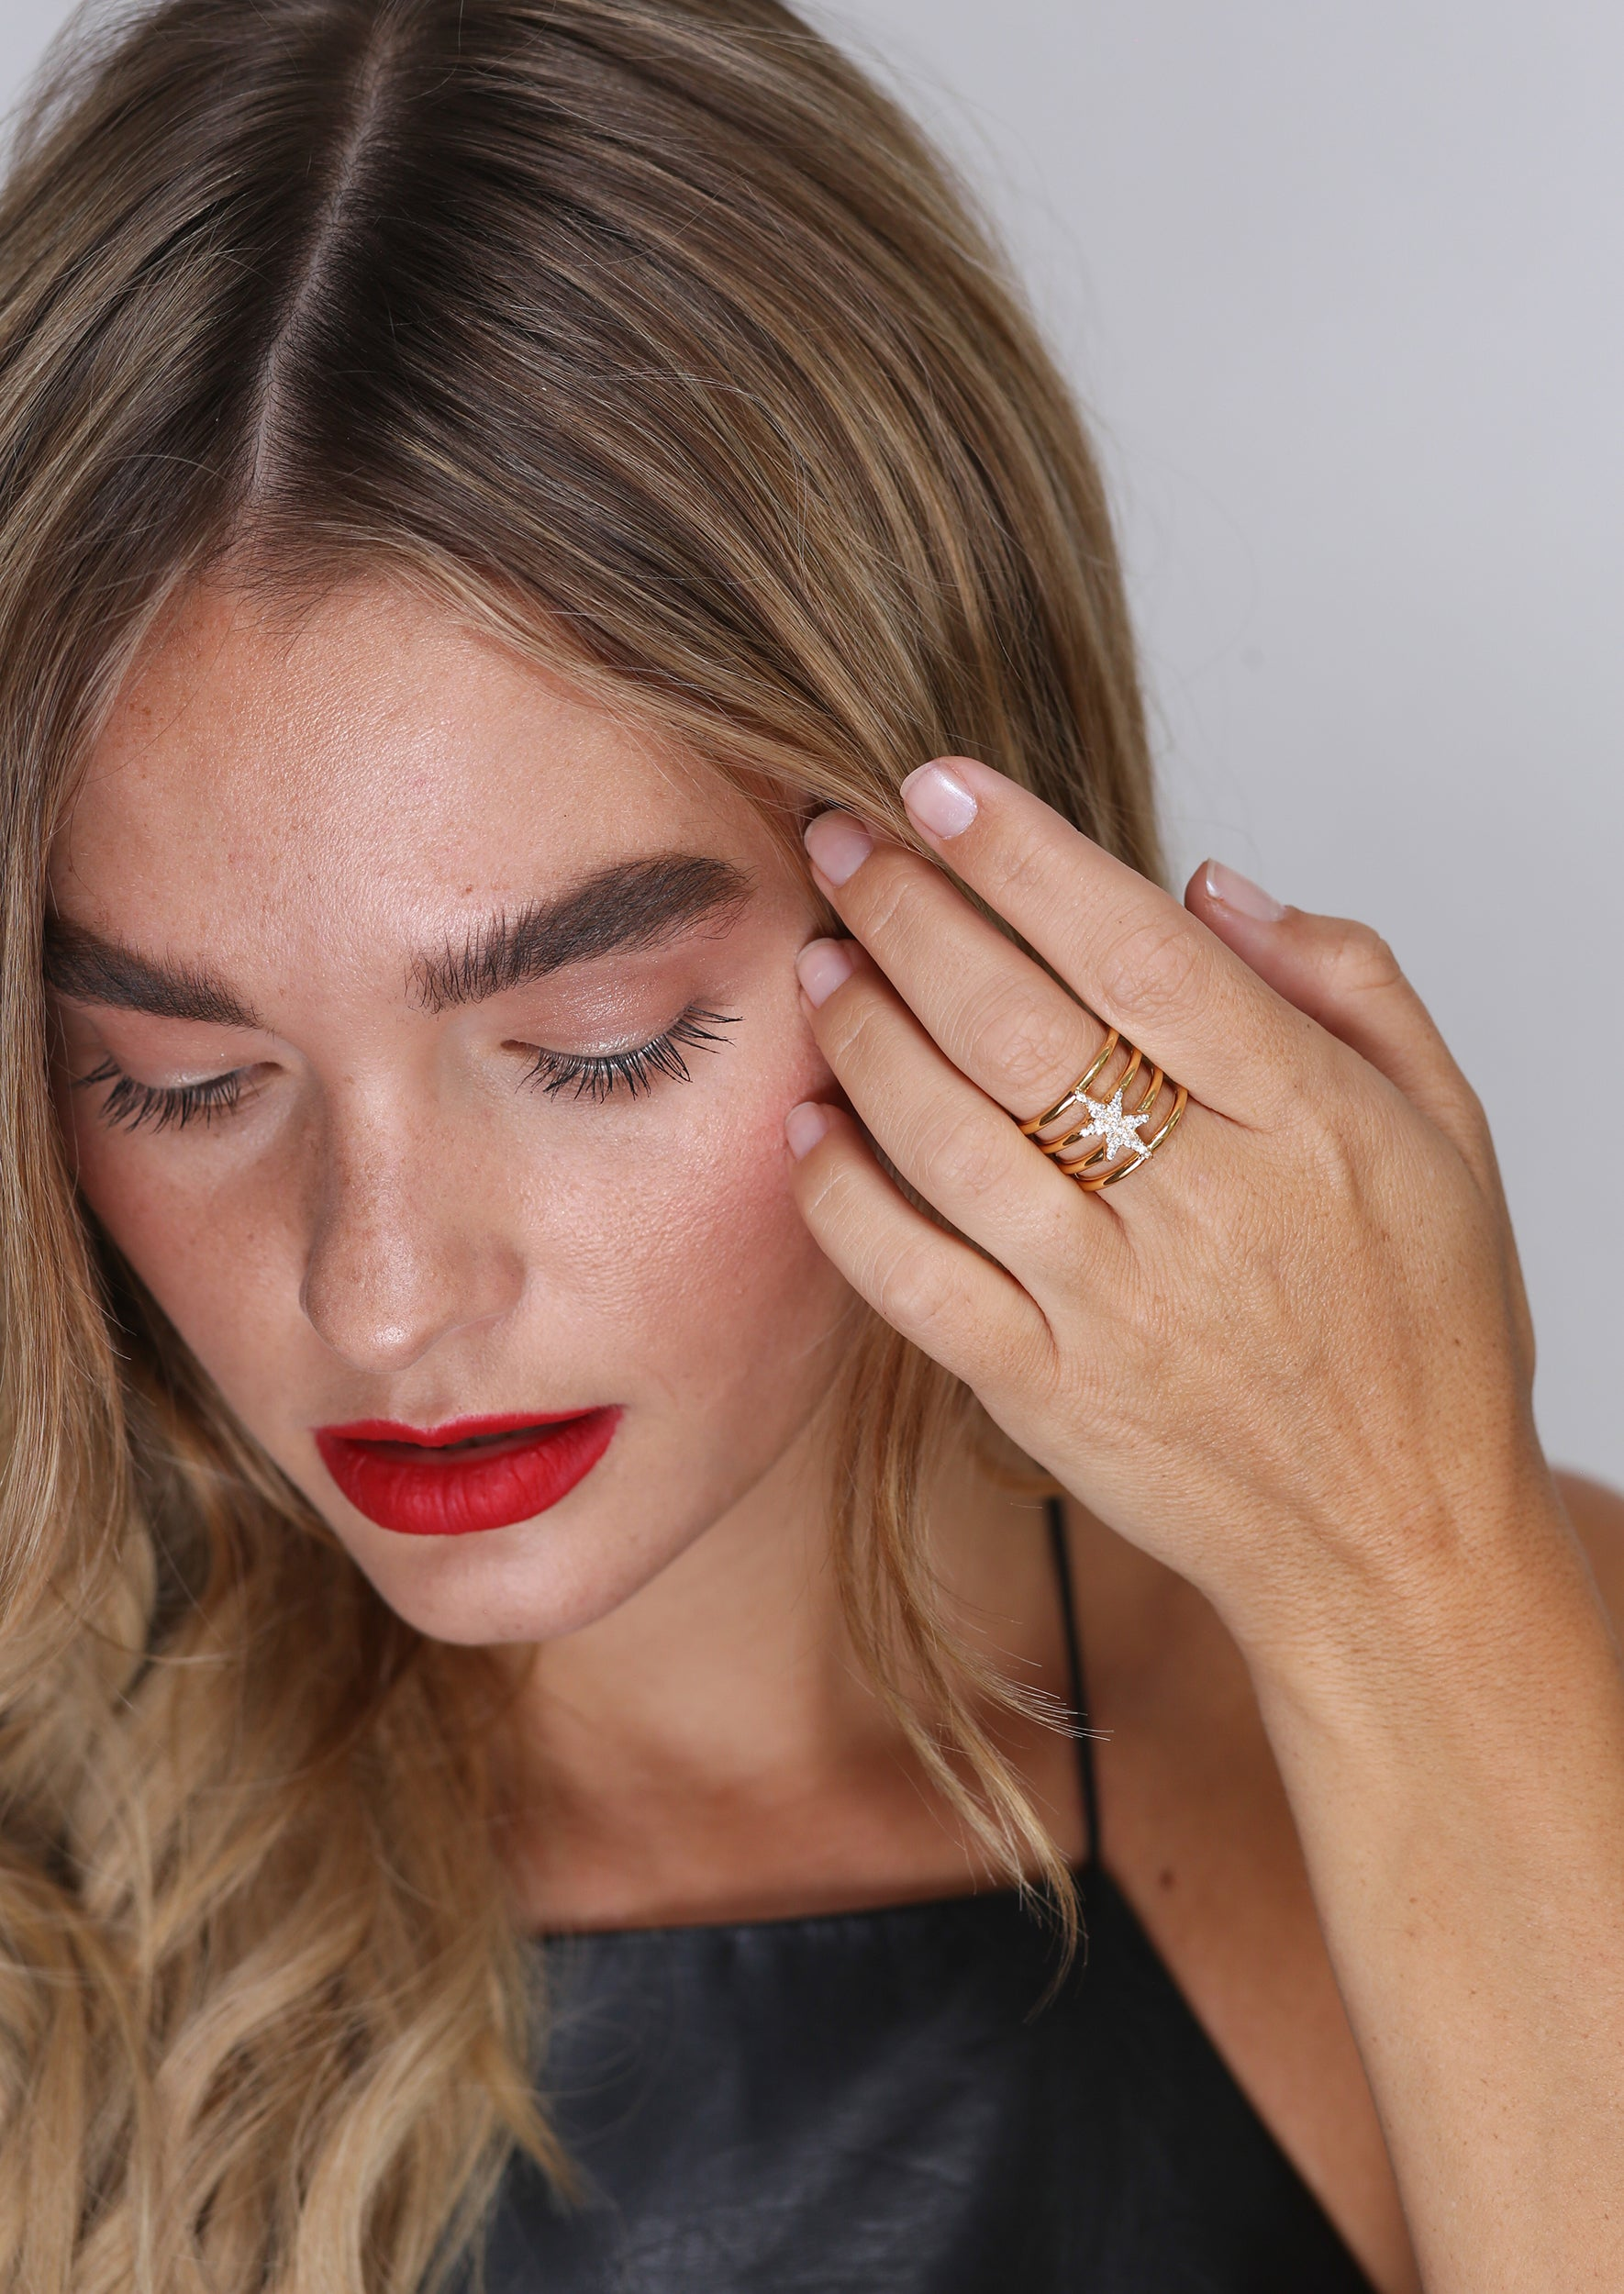 North Star Ring - Jules Smith - 14K Gold Plated - Boho Jewelry